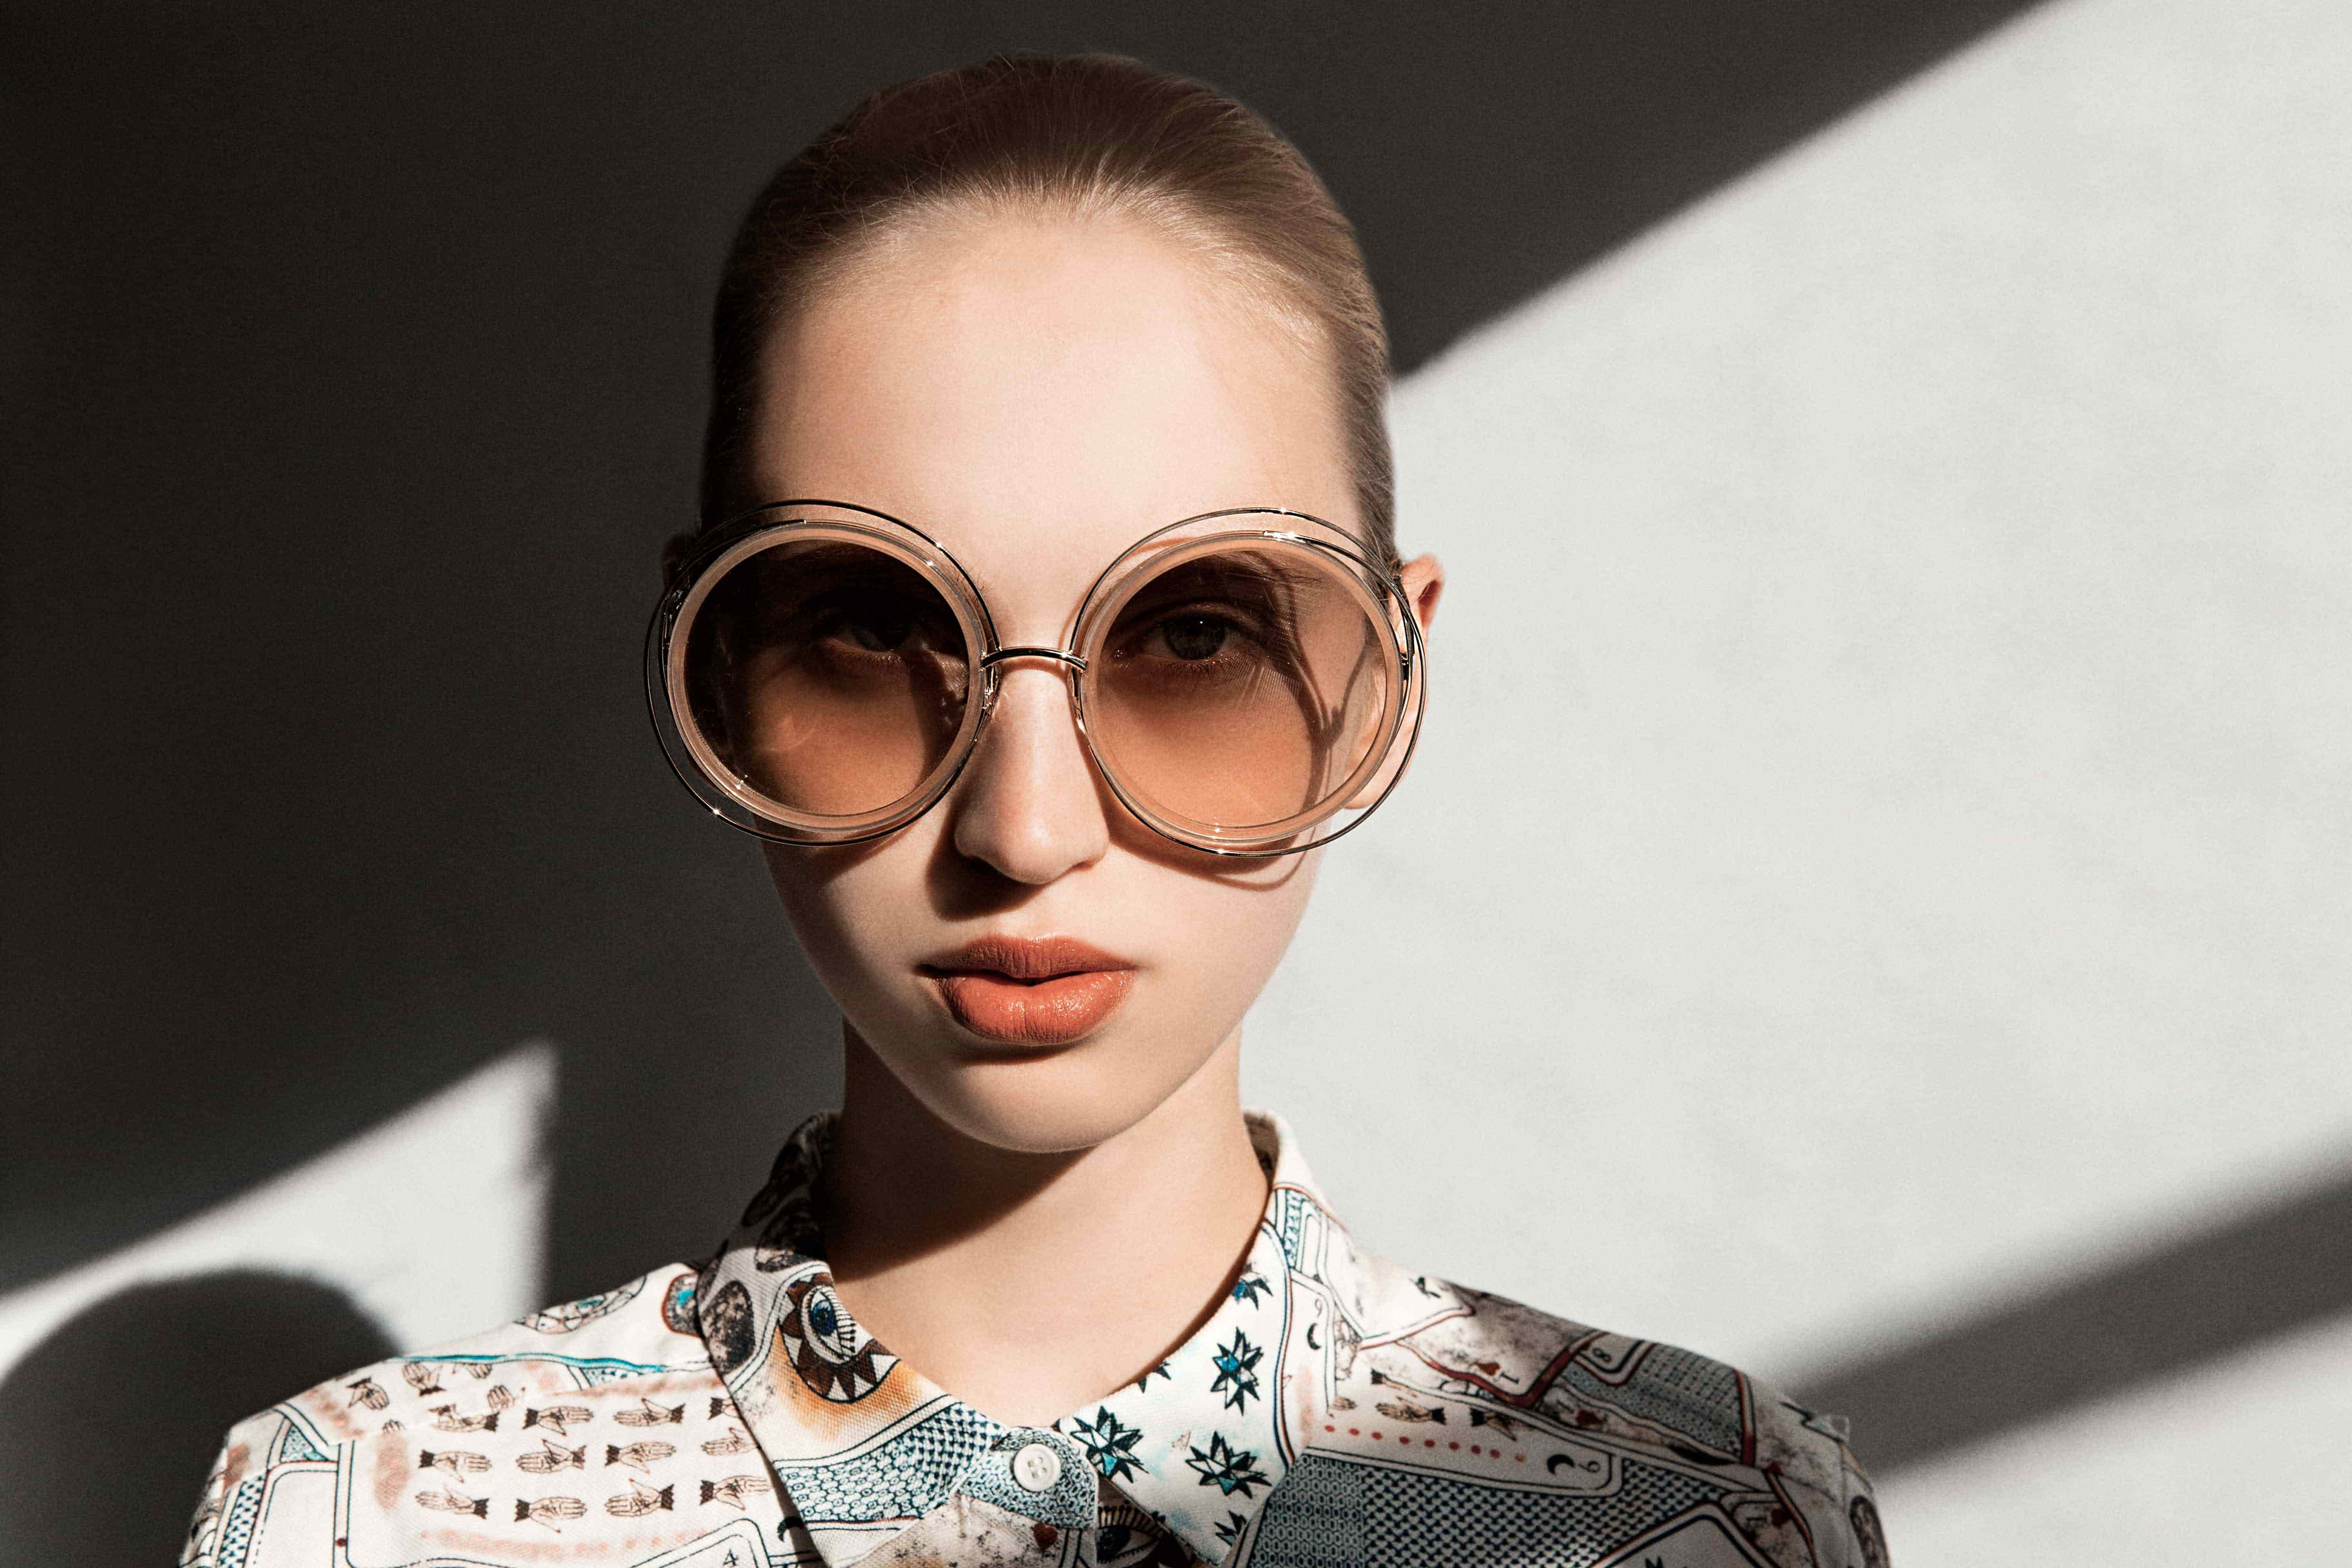 539a1bb85c32 Round Oversized Chloe CE120S 724 Sunglasses in Gold  Transparent Peach  Frame with Grey Lenses